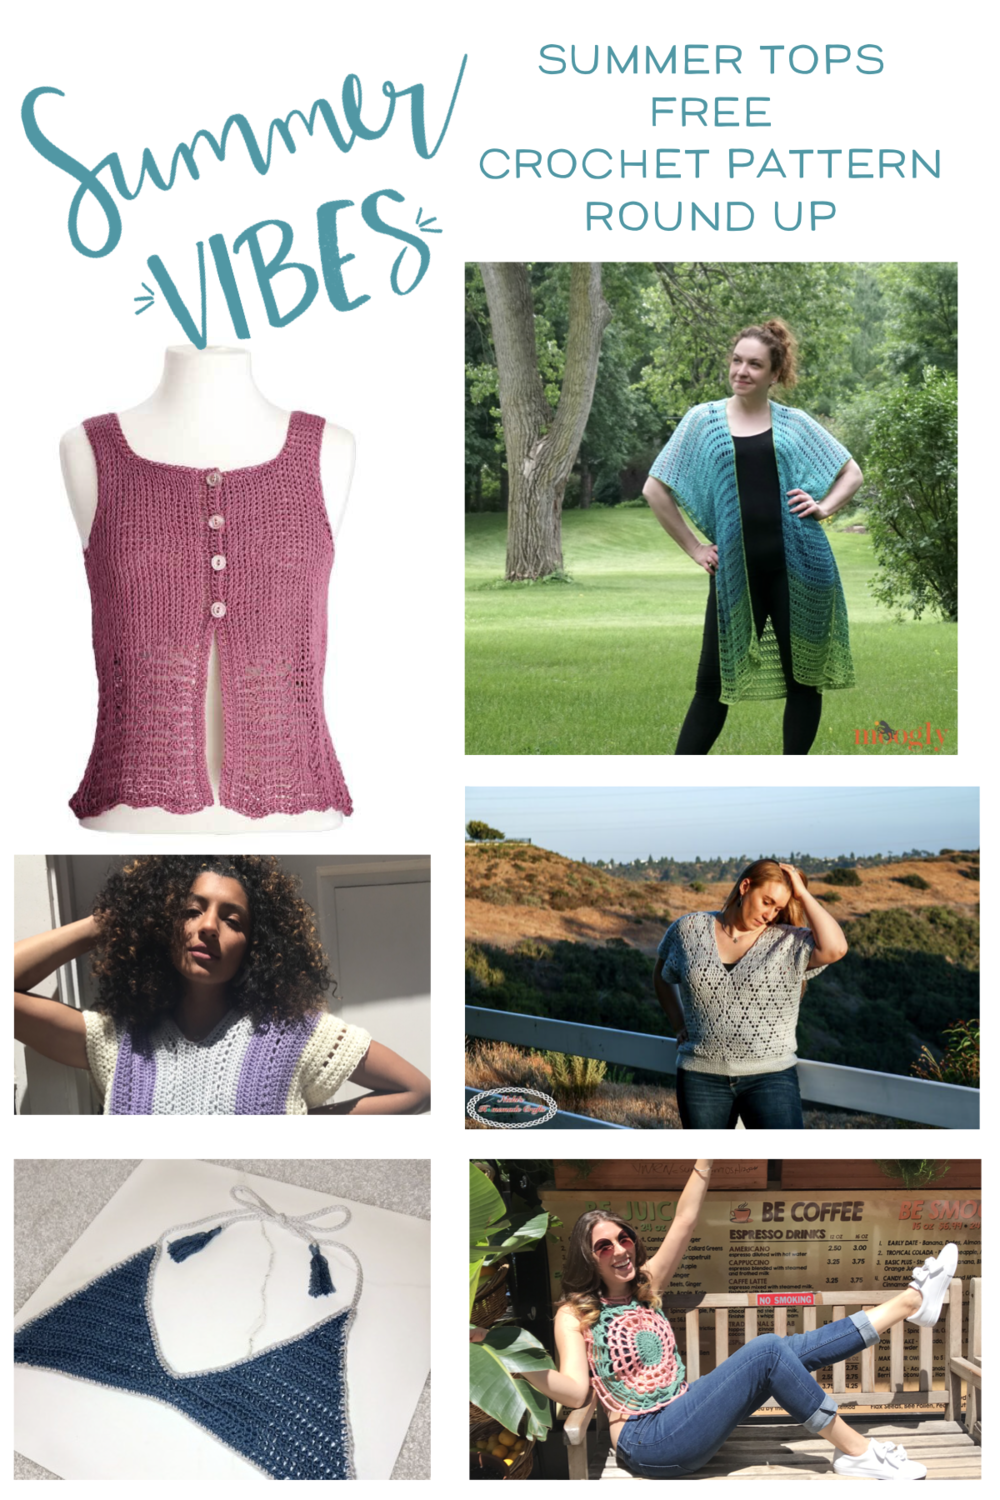 summer-festival-tops-free-crochet-pattern-round-up.jpeg